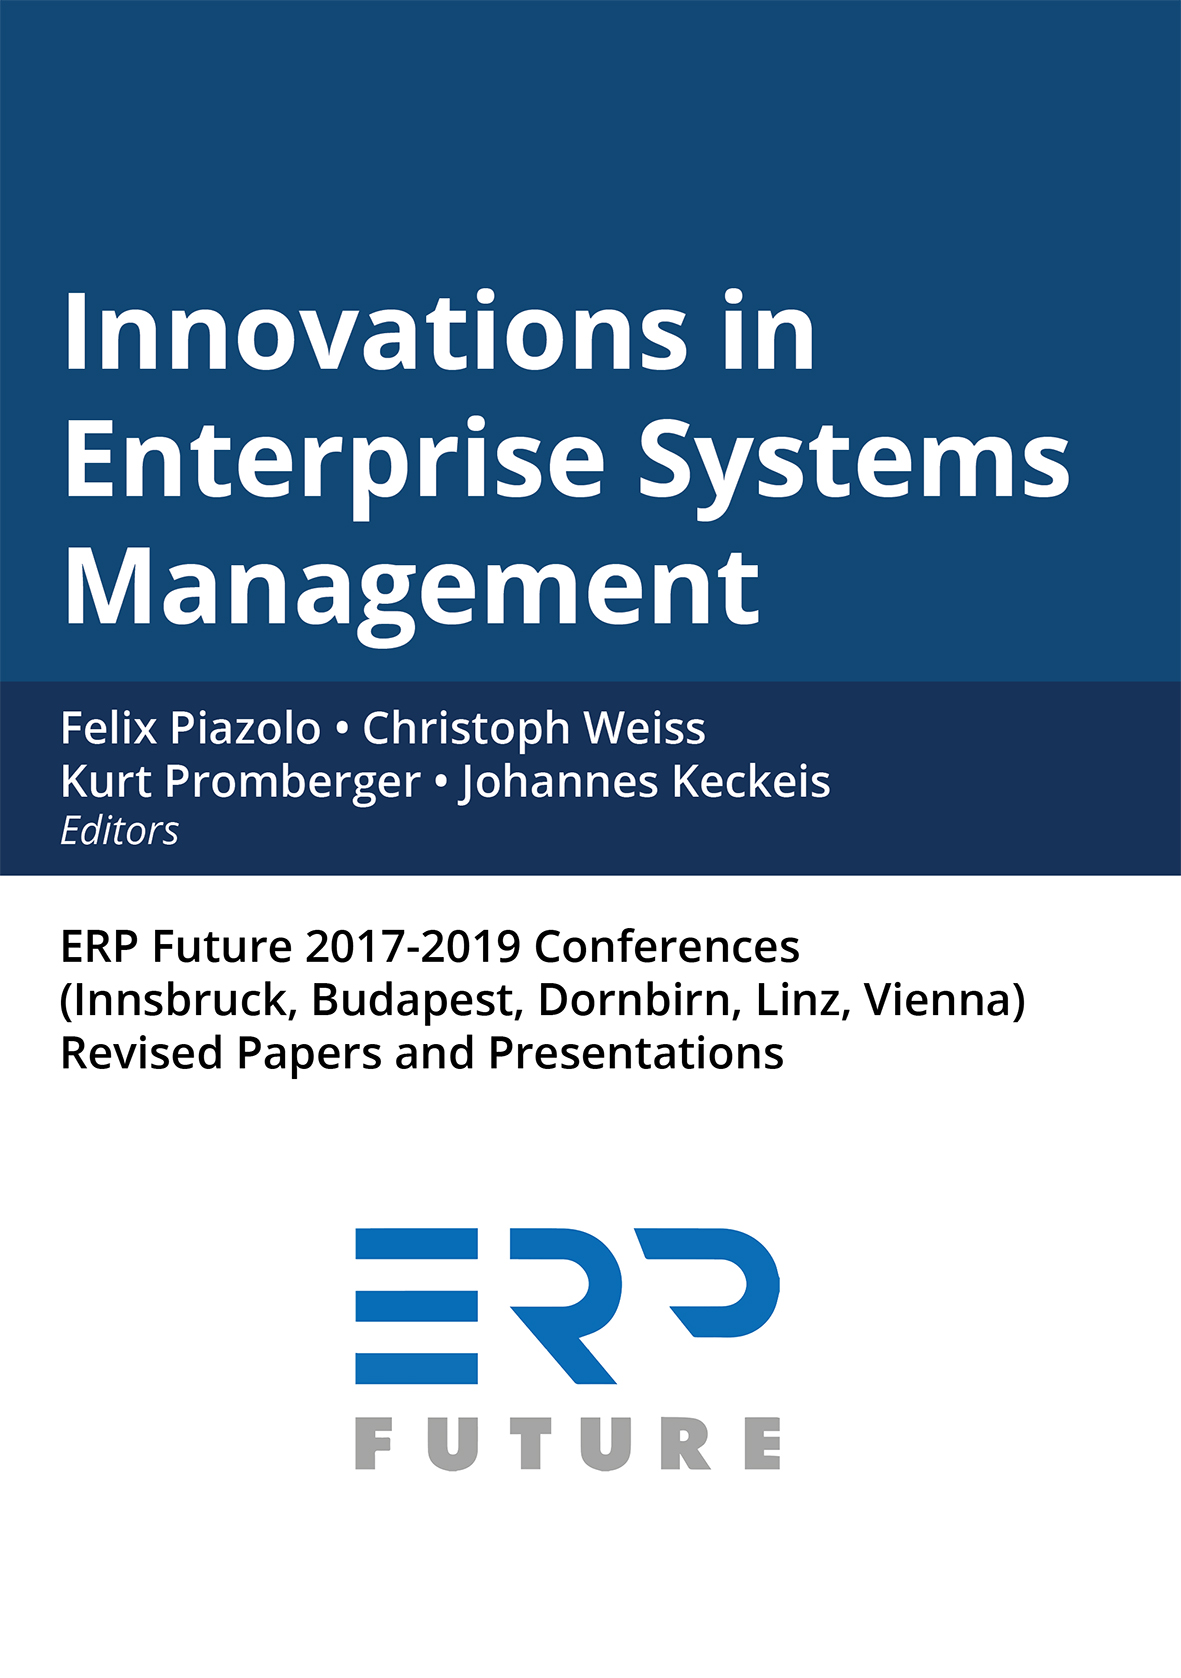 Umschlag_Cover_Innovations in Enterprise Systems Management_2020_10x15